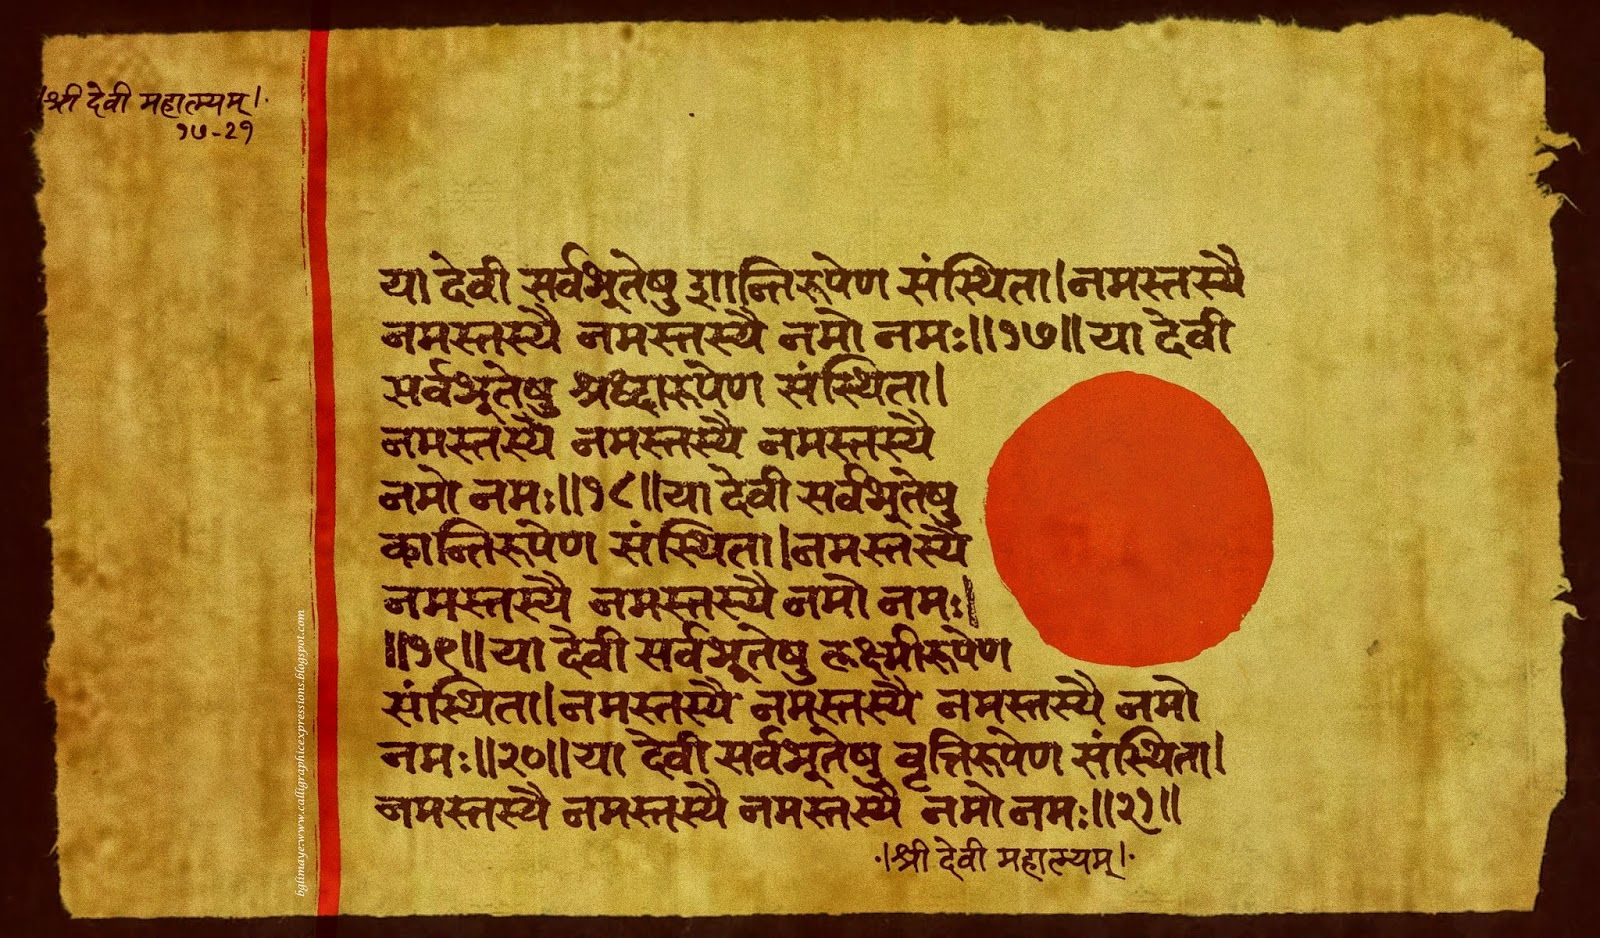 Calligraphic Expressions By B G Limaye Calligraphy 02 10 2014 Calligraphy Words Marathi Calligraphy Hindi Calligraphy